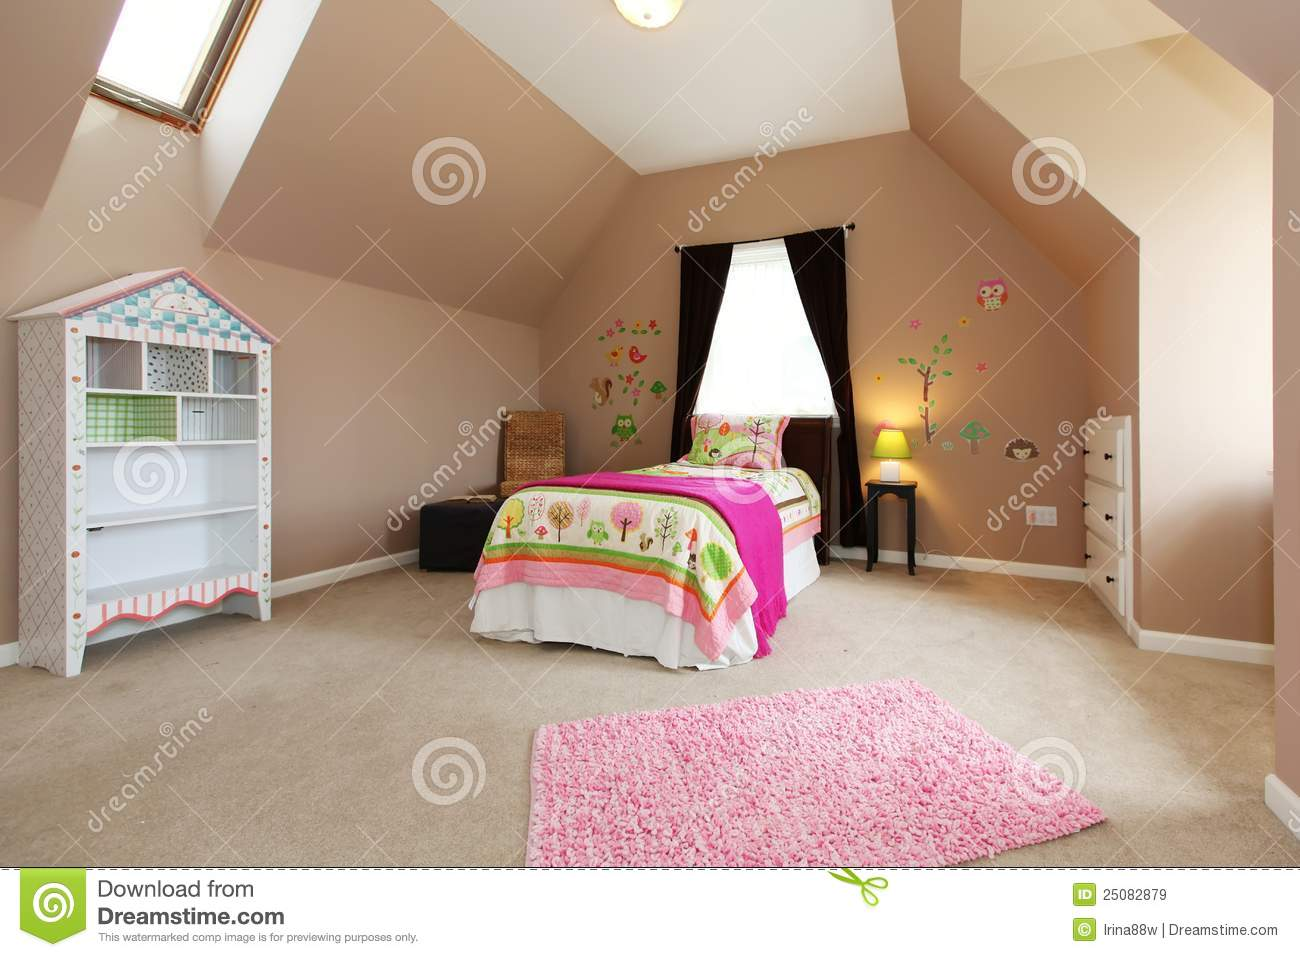 Picture of: 1 632 Empty Kids Room Photos Free Royalty Free Stock Photos From Dreamstime